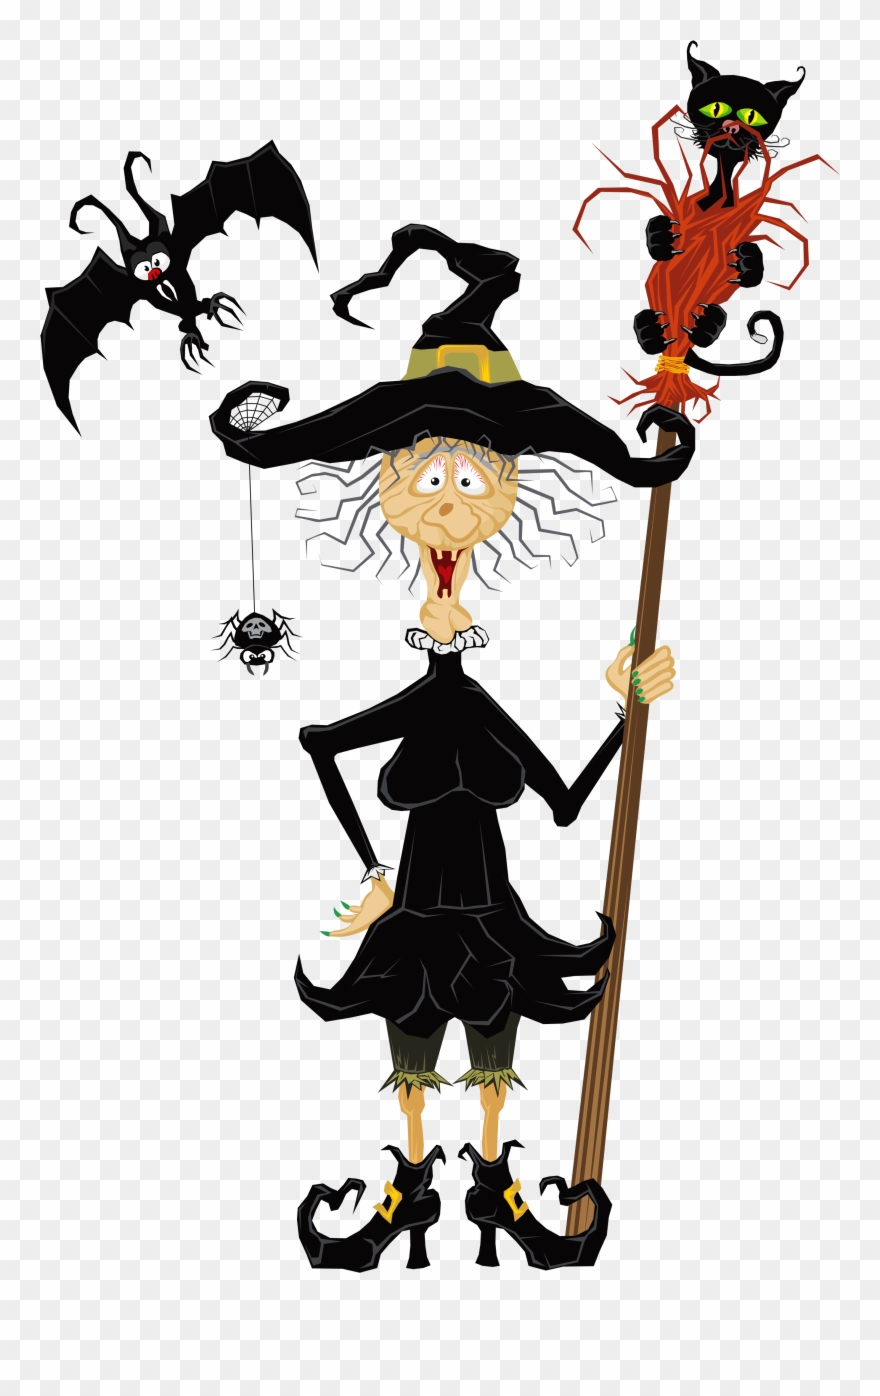 Creepy character cliparts clip royalty free stock Halloween Creepy Witch Clipart - Witch Halloween Clip Art - Png ... clip royalty free stock